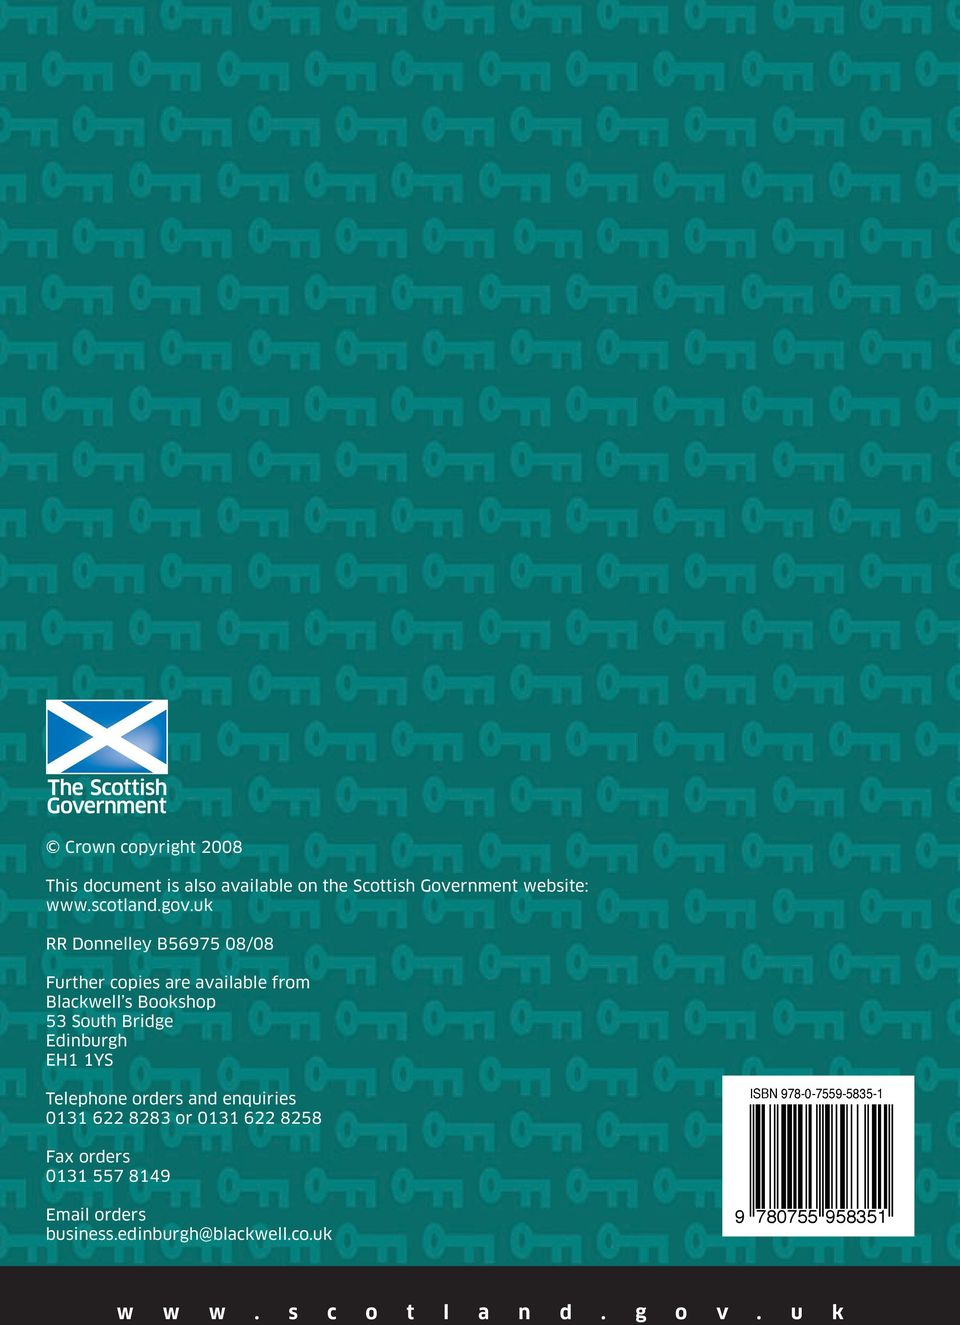 Edinburgh EH1 1YS Telephone orders and enquiries 0131 622 8283 or 0131 622 8258 ISBN 978-0-7559-5835-1 Fax